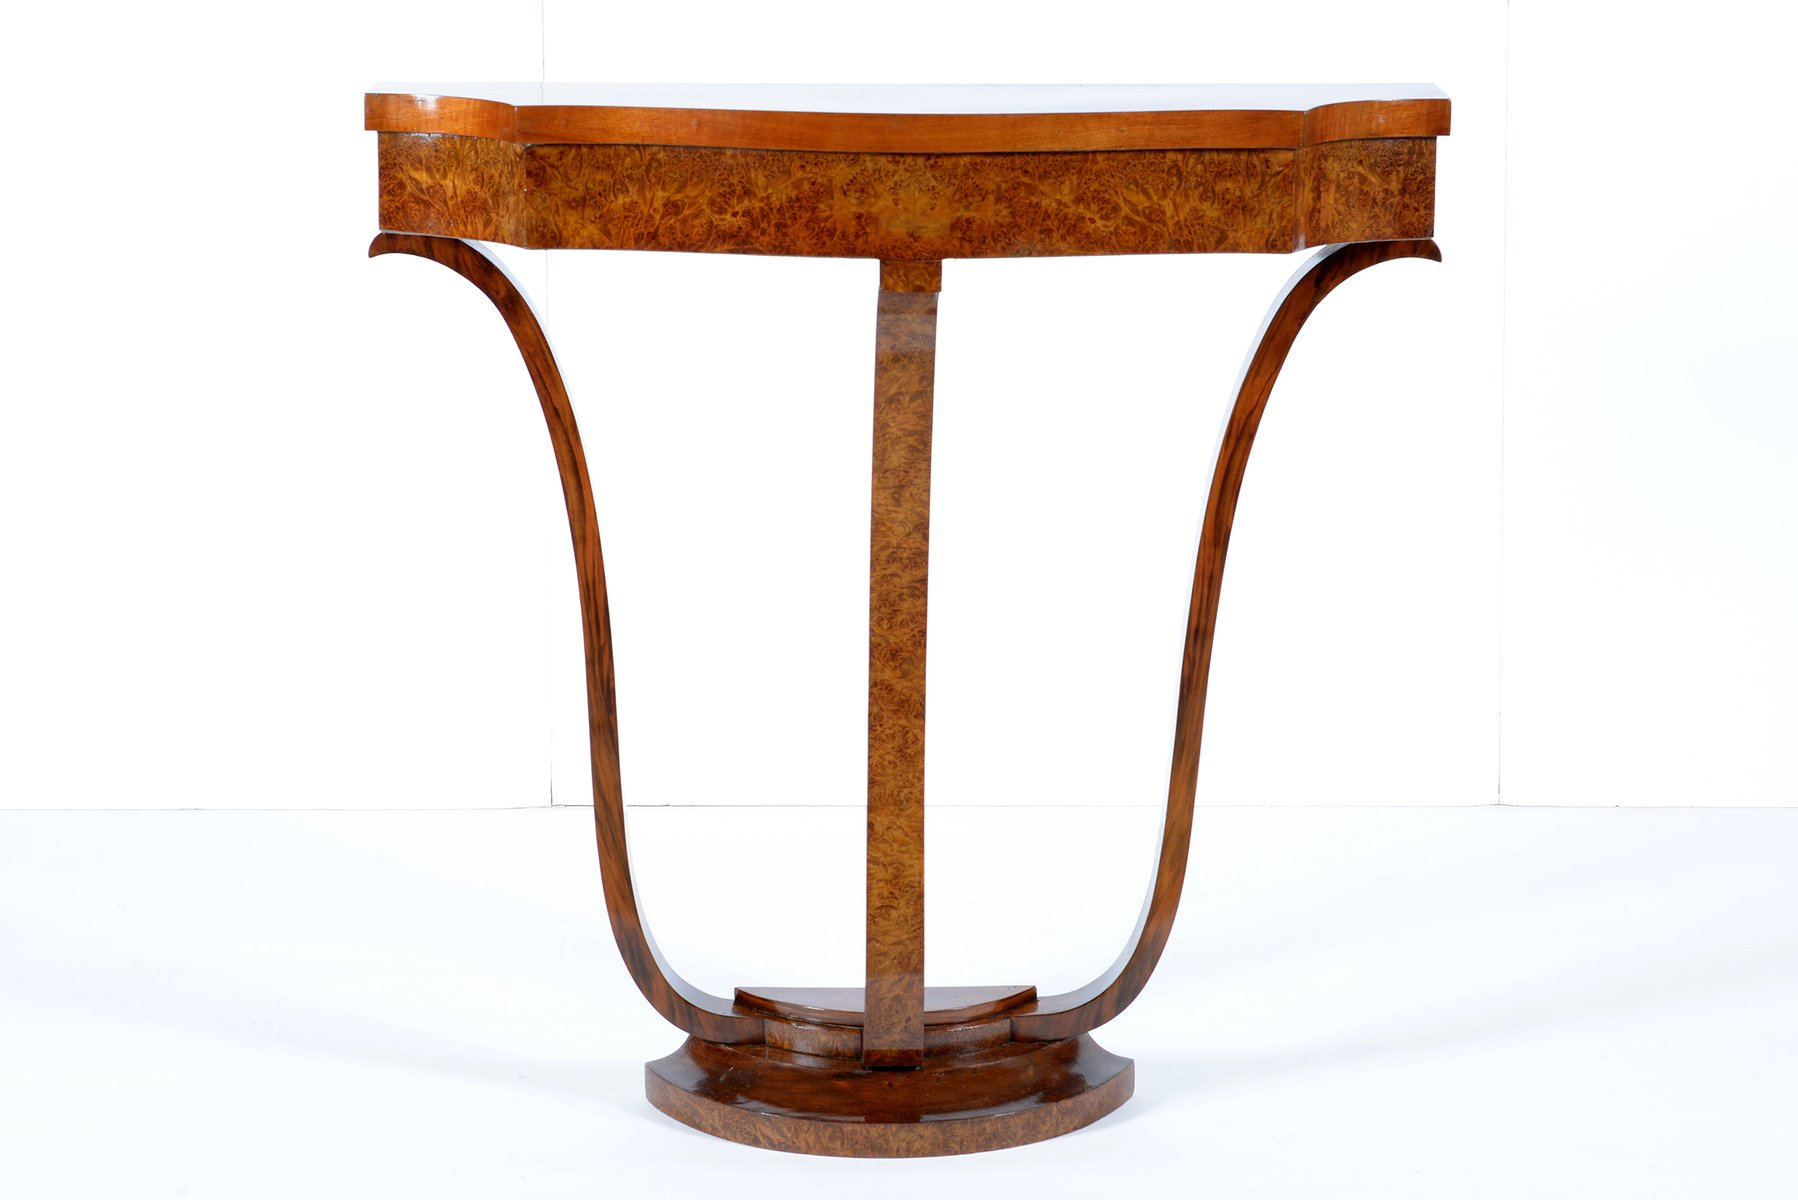 Italian Art Deco Walnut Burr Console, 1930s for sale at Pamono